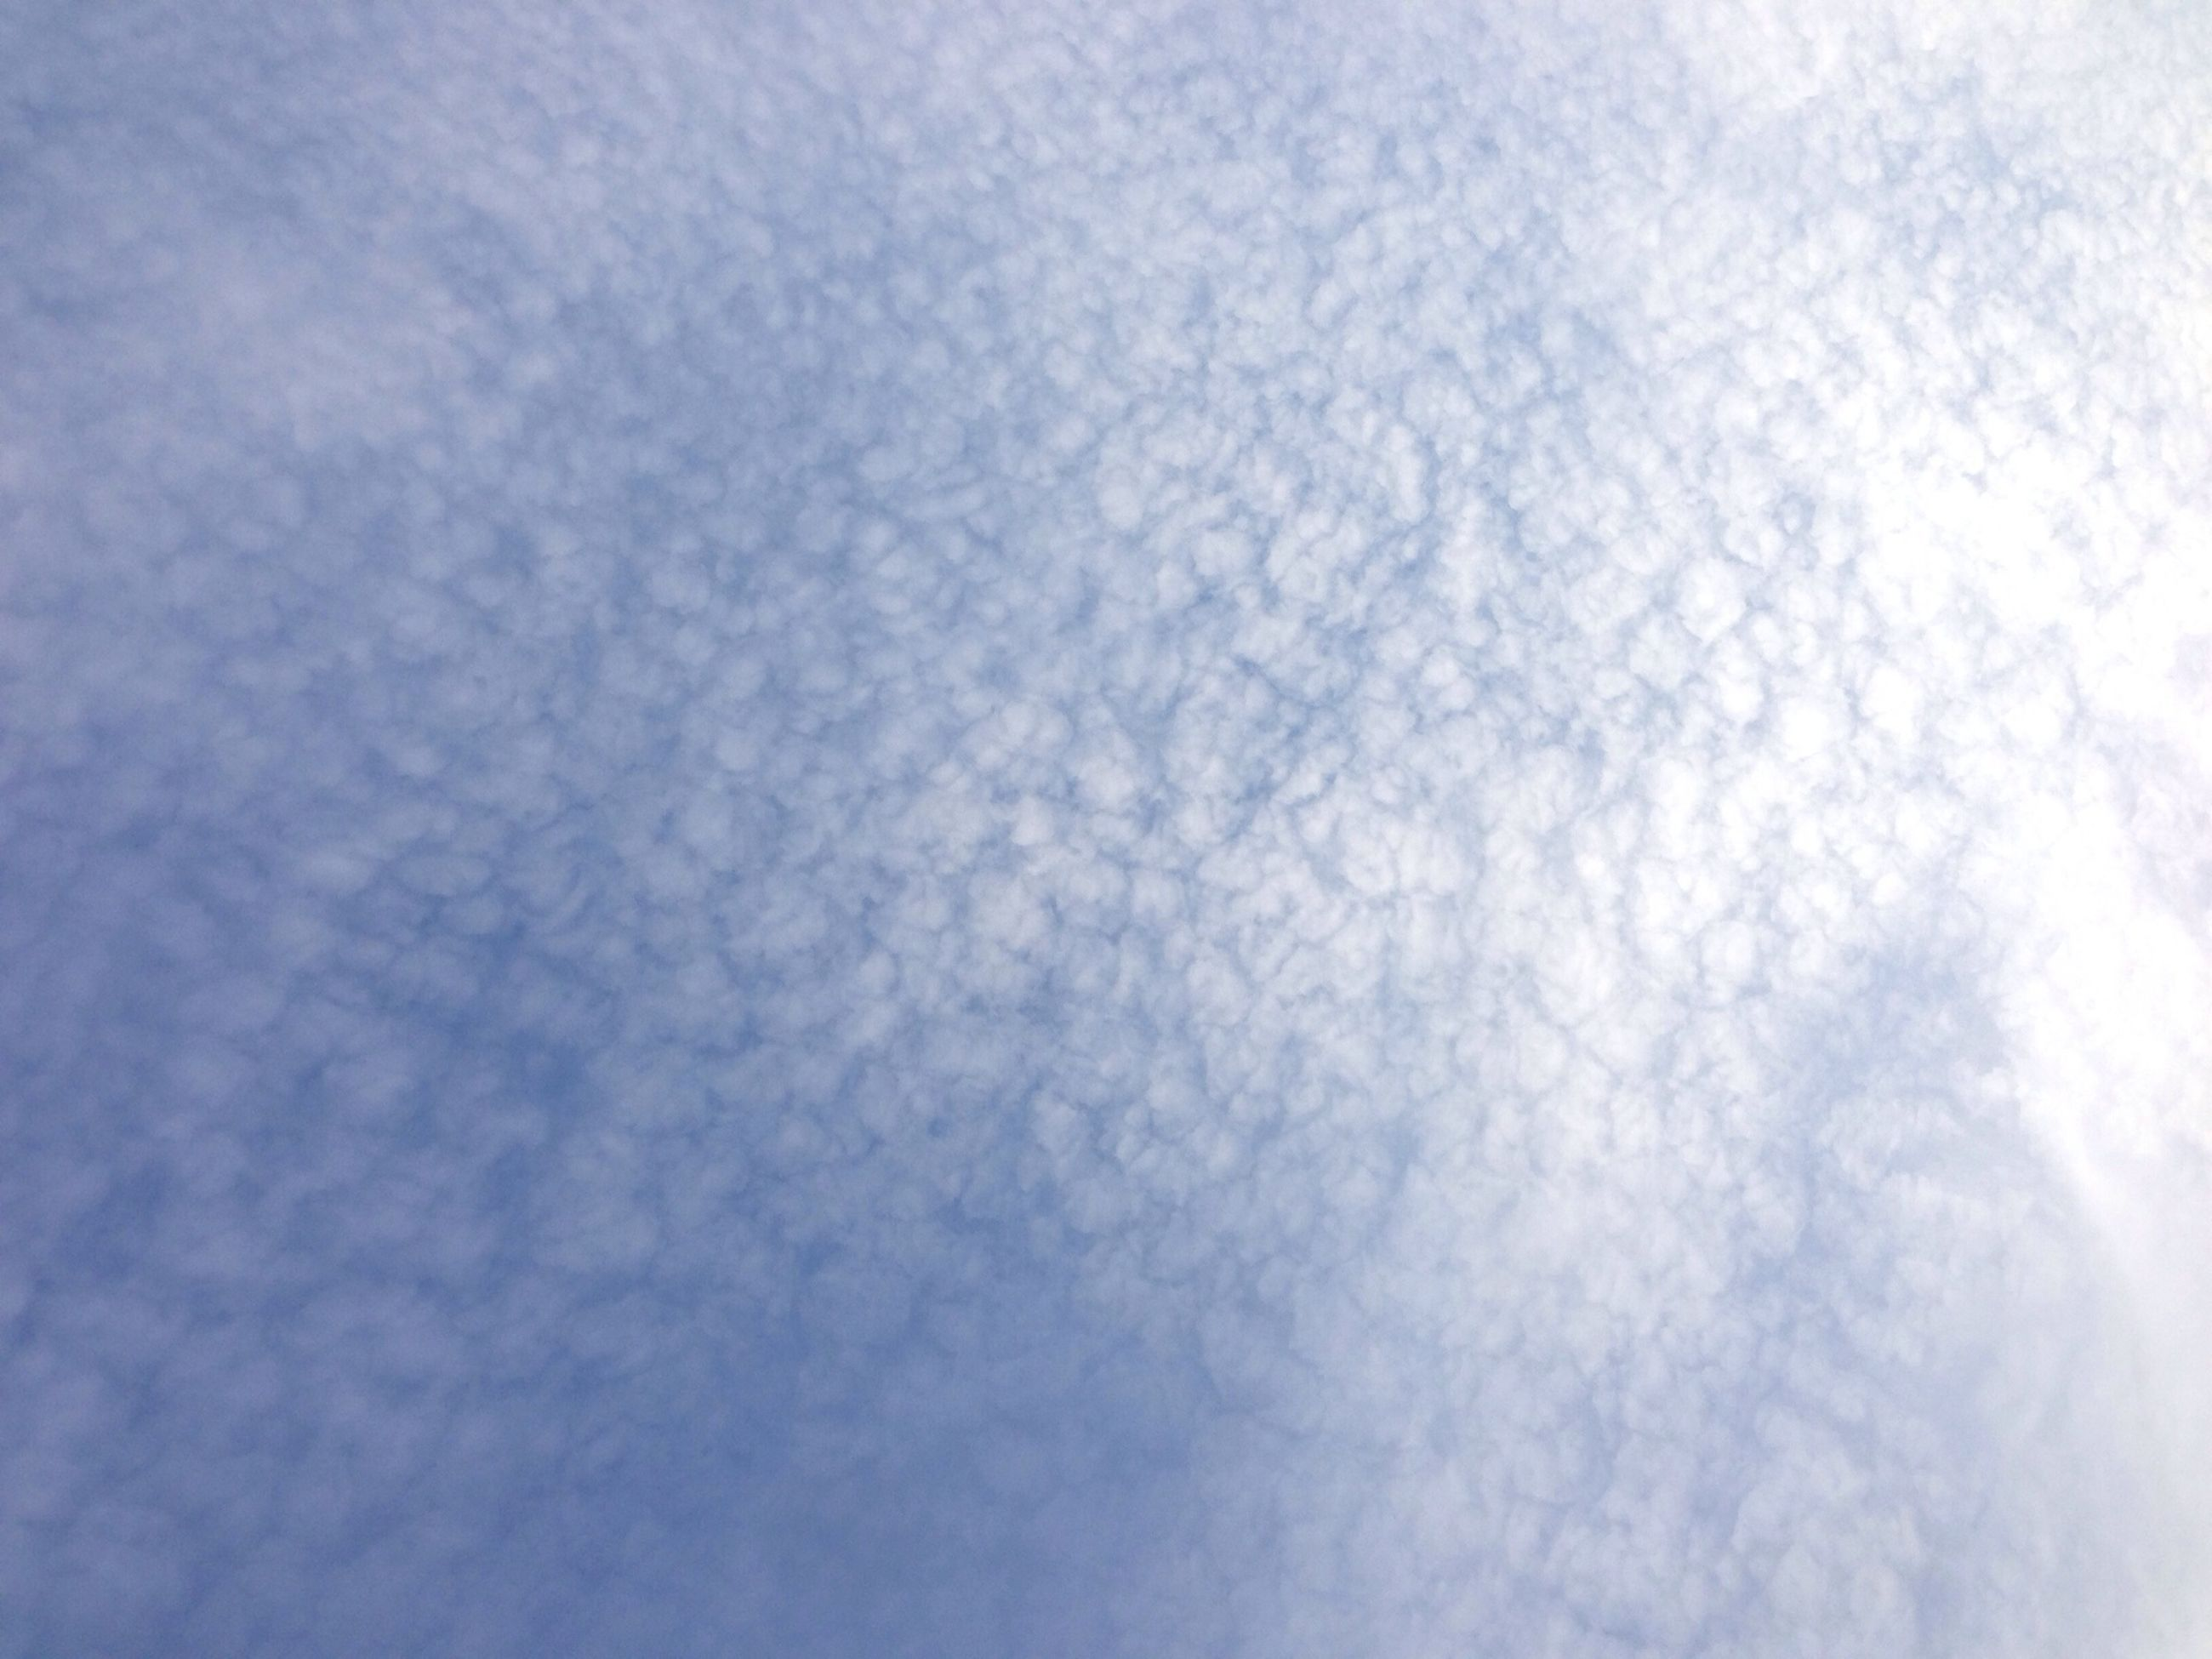 full frame, backgrounds, low angle view, white color, nature, weather, tranquility, sky, beauty in nature, white, textured, day, no people, outdoors, pattern, blue, cloud - sky, copy space, covering, tranquil scene